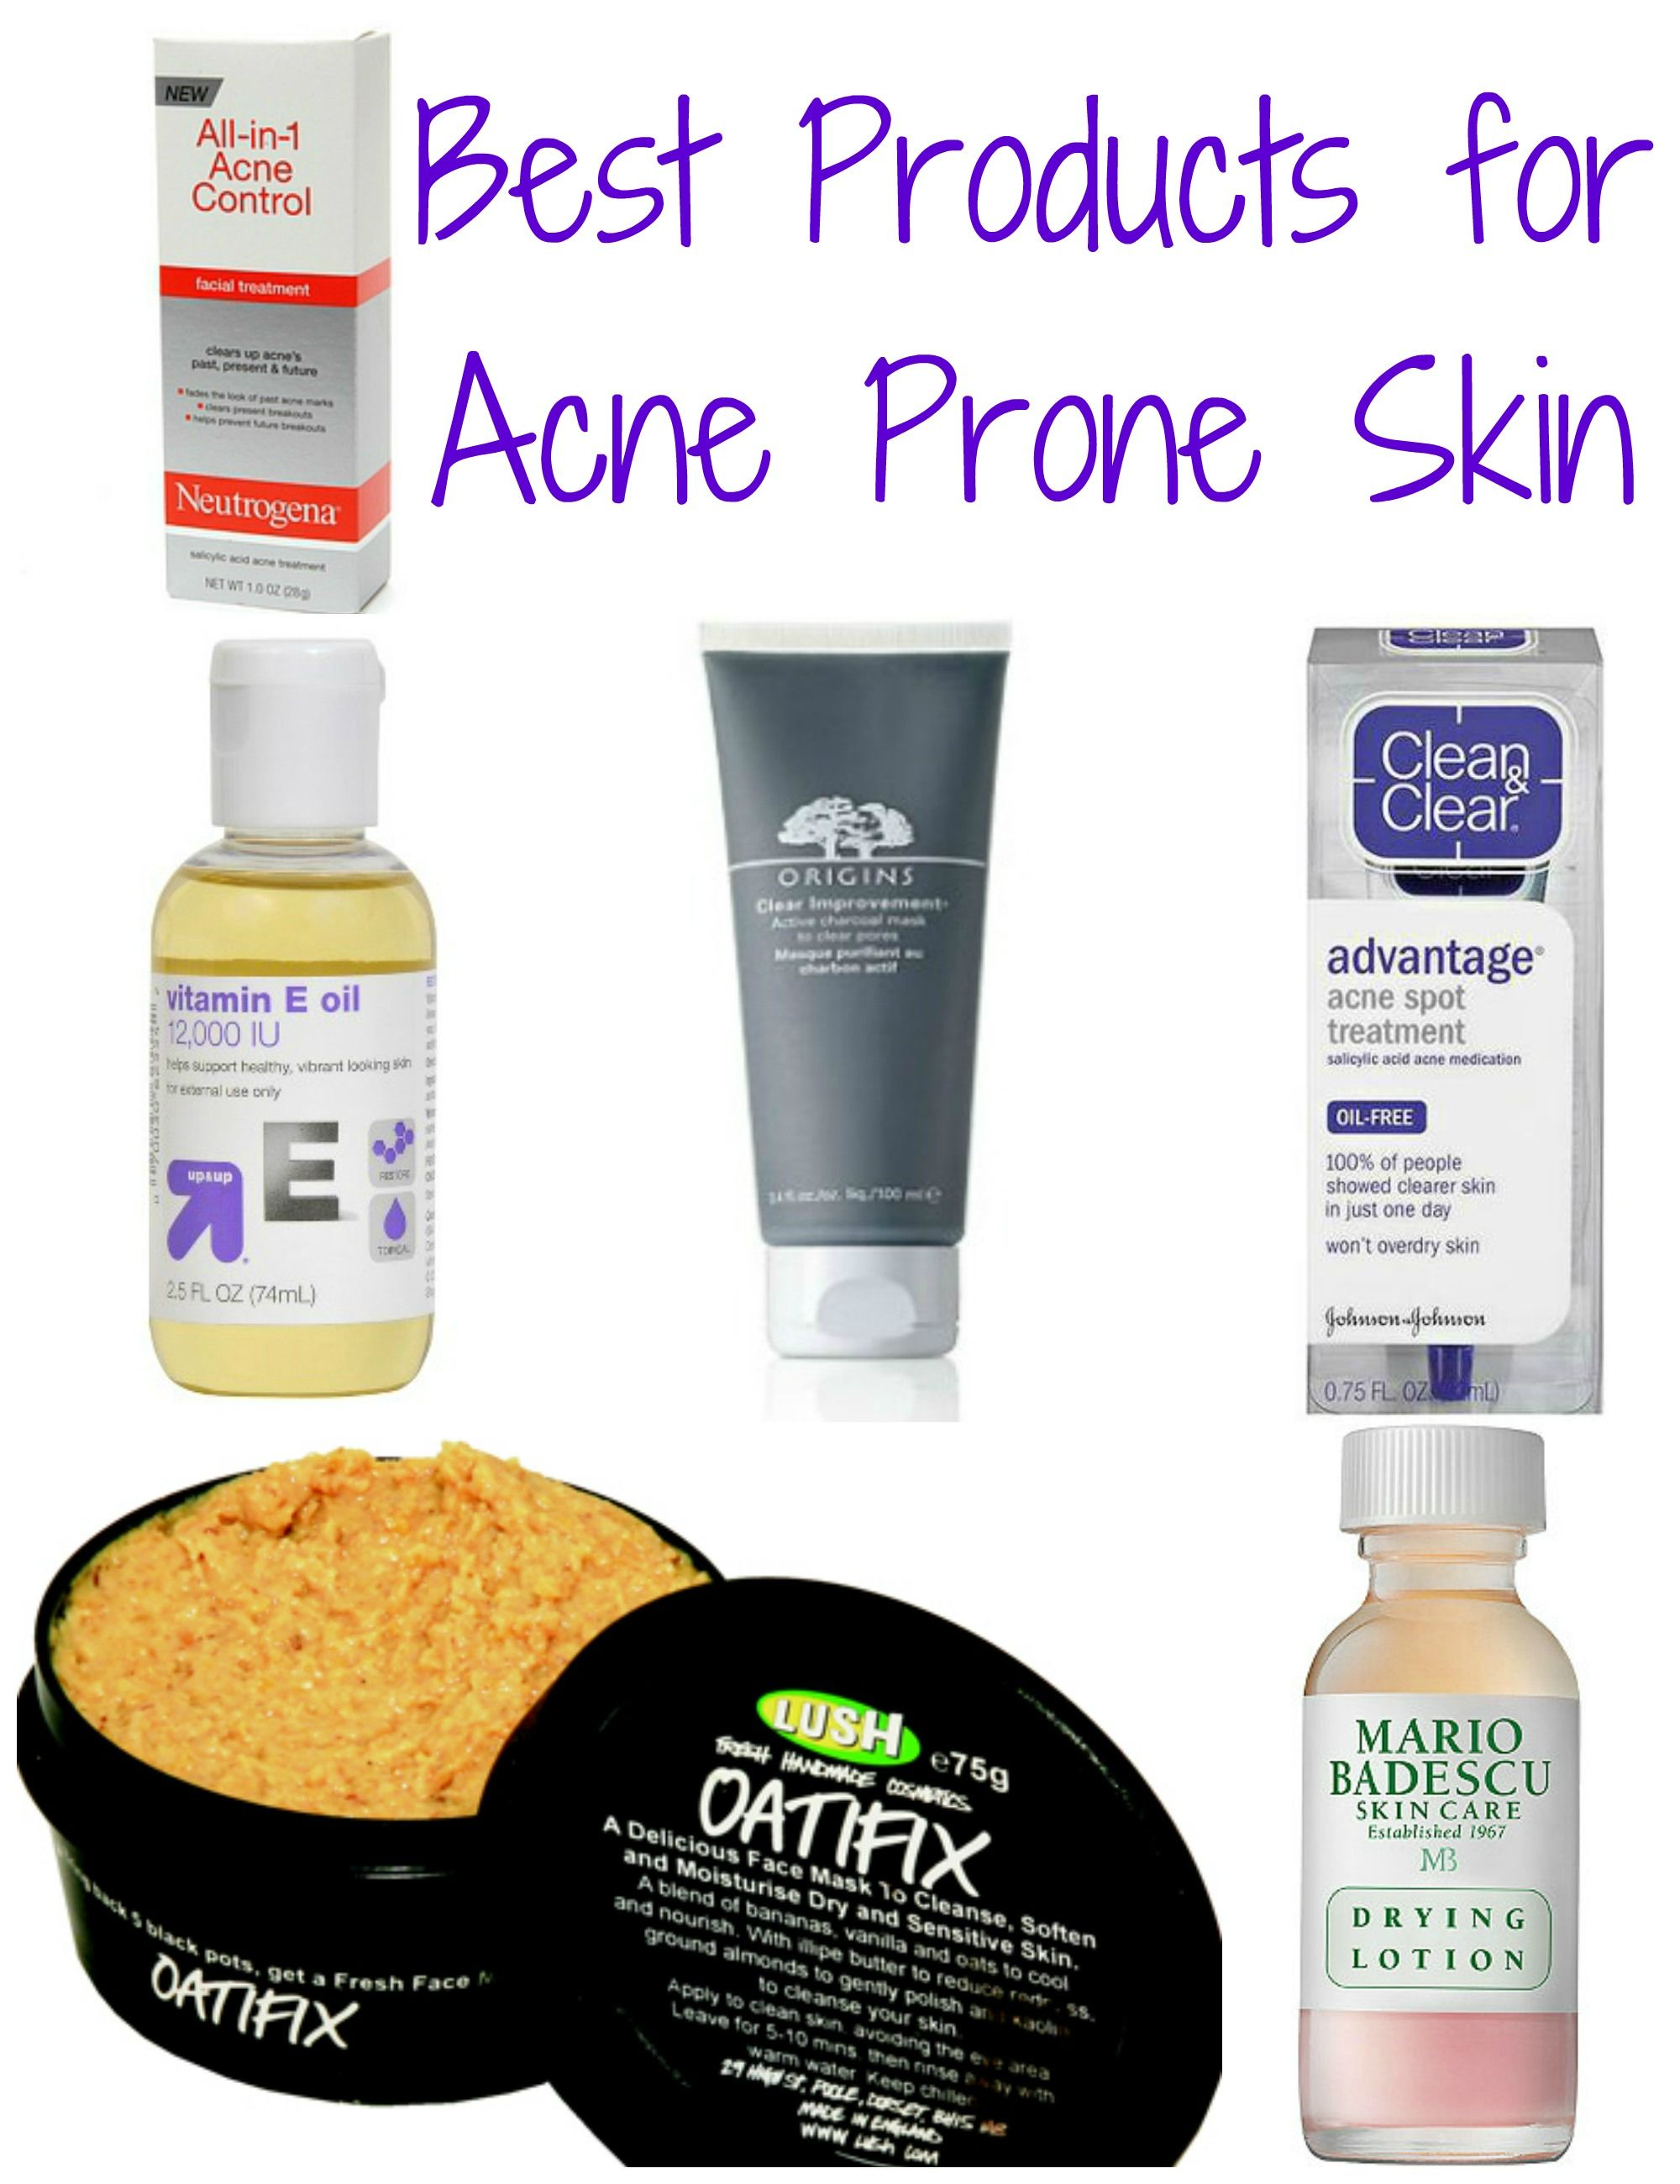 Best Products for Acne Prone Skin Best acne products